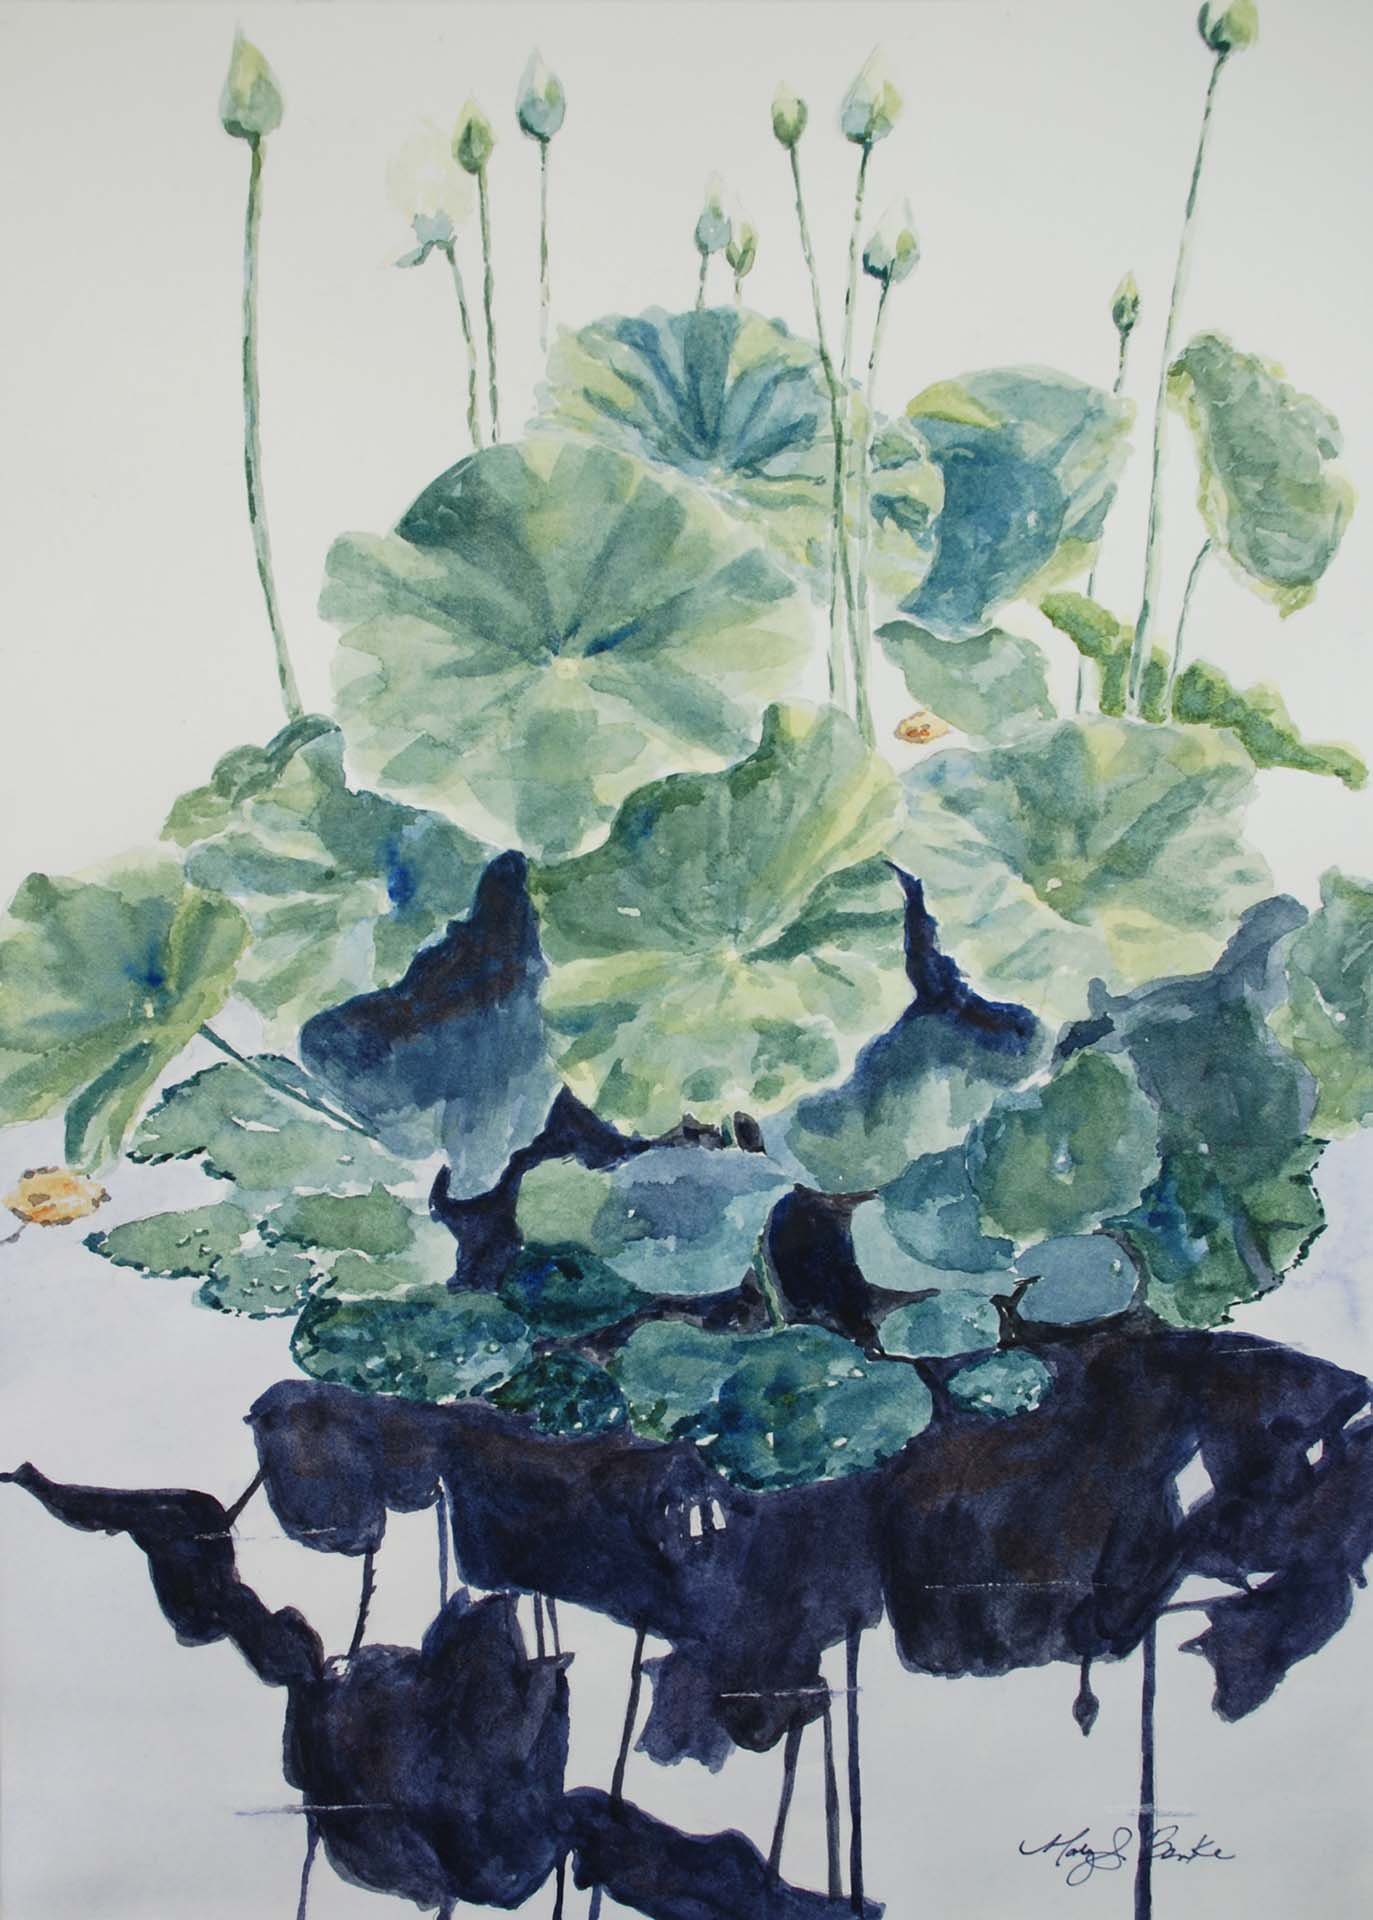 A watercolor painting of water lilies and their blooms reflected in still water with dark shadows by Mary Benke